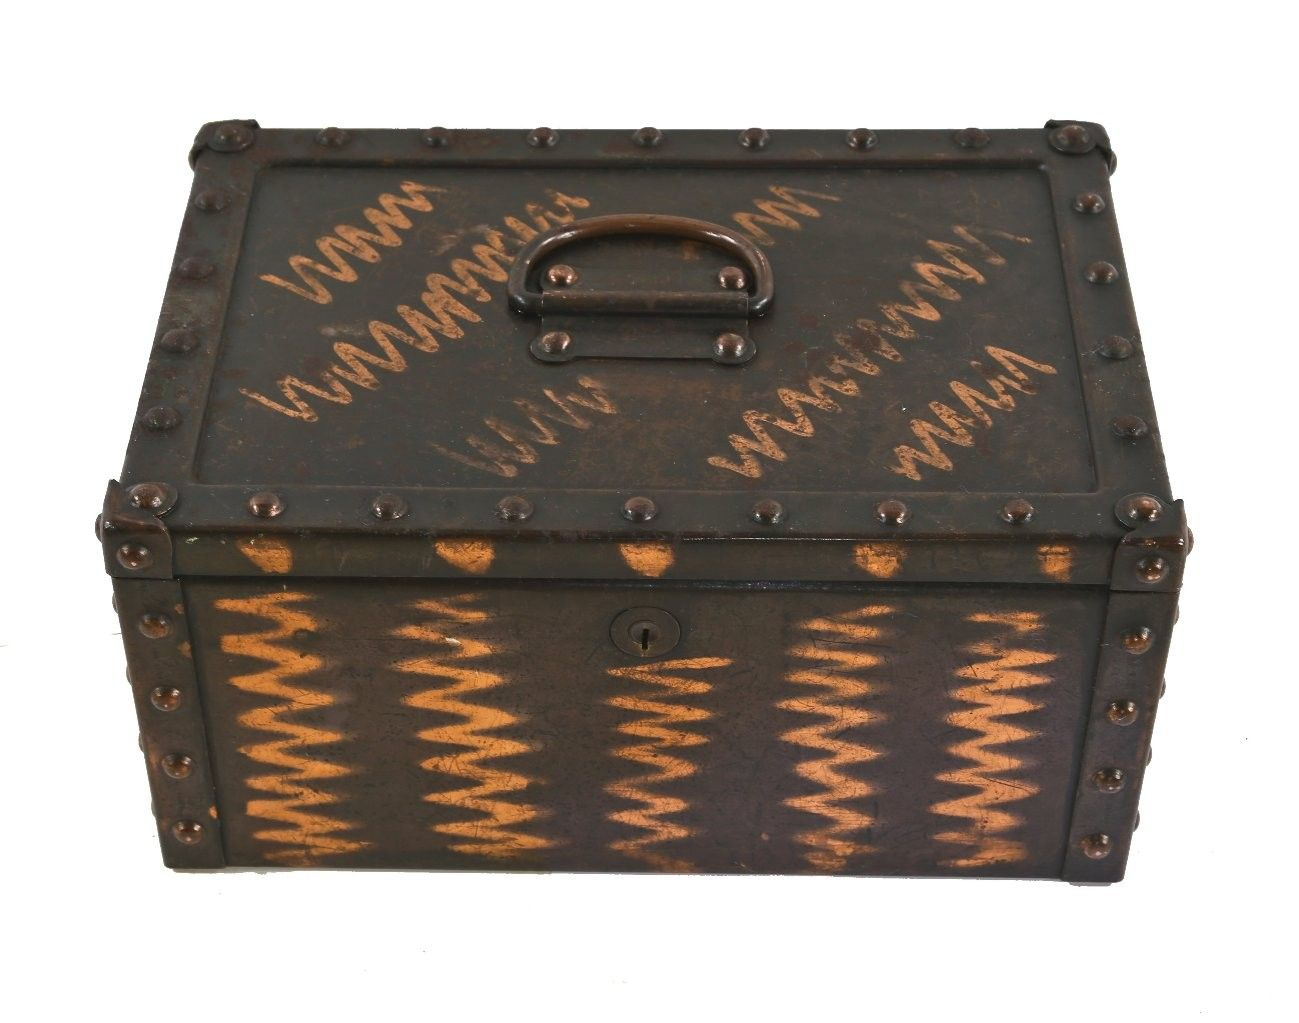 """unique c. early 20th century american industrial reinforced """"fireproof"""" solid steel strong box with original oxidized copper-plated finish"""